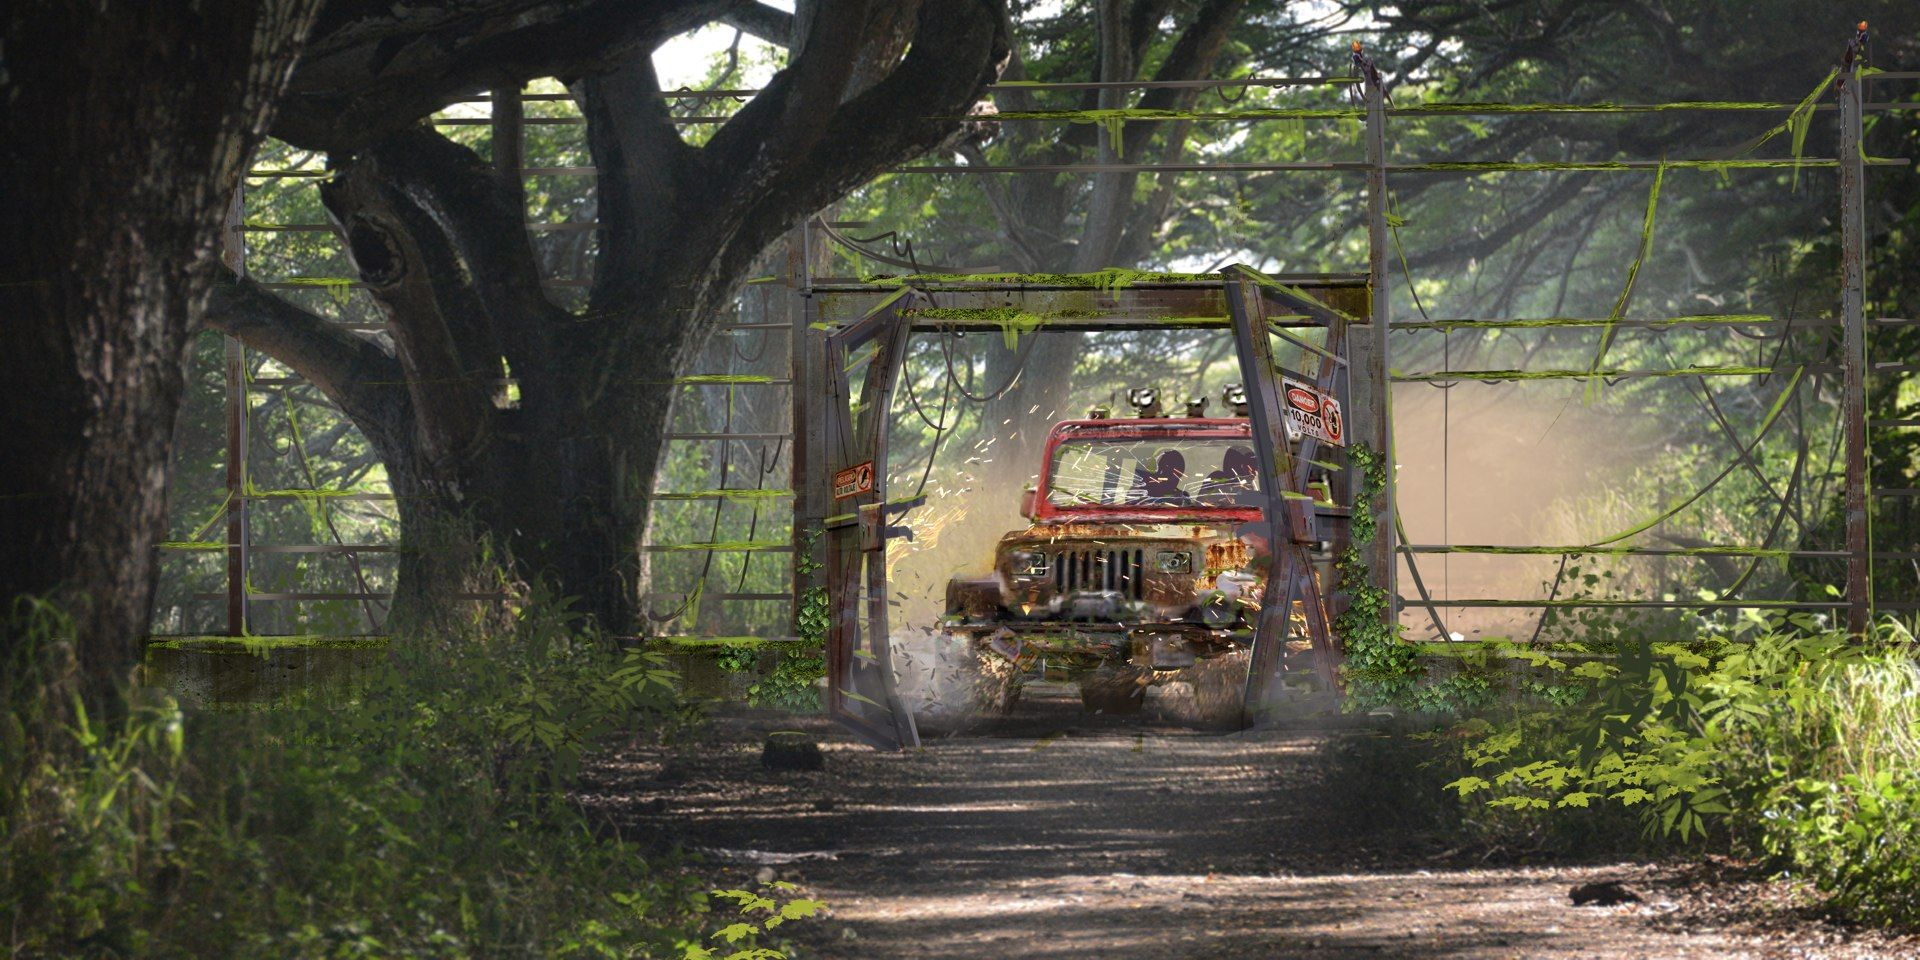 Jurassic park card 3 by chicagocubsfan24 on deviantart - Concept Art Of The Hot Wired Jurassic Park Jeep Returning To The Jurassic World Enclosure From Jurassic World